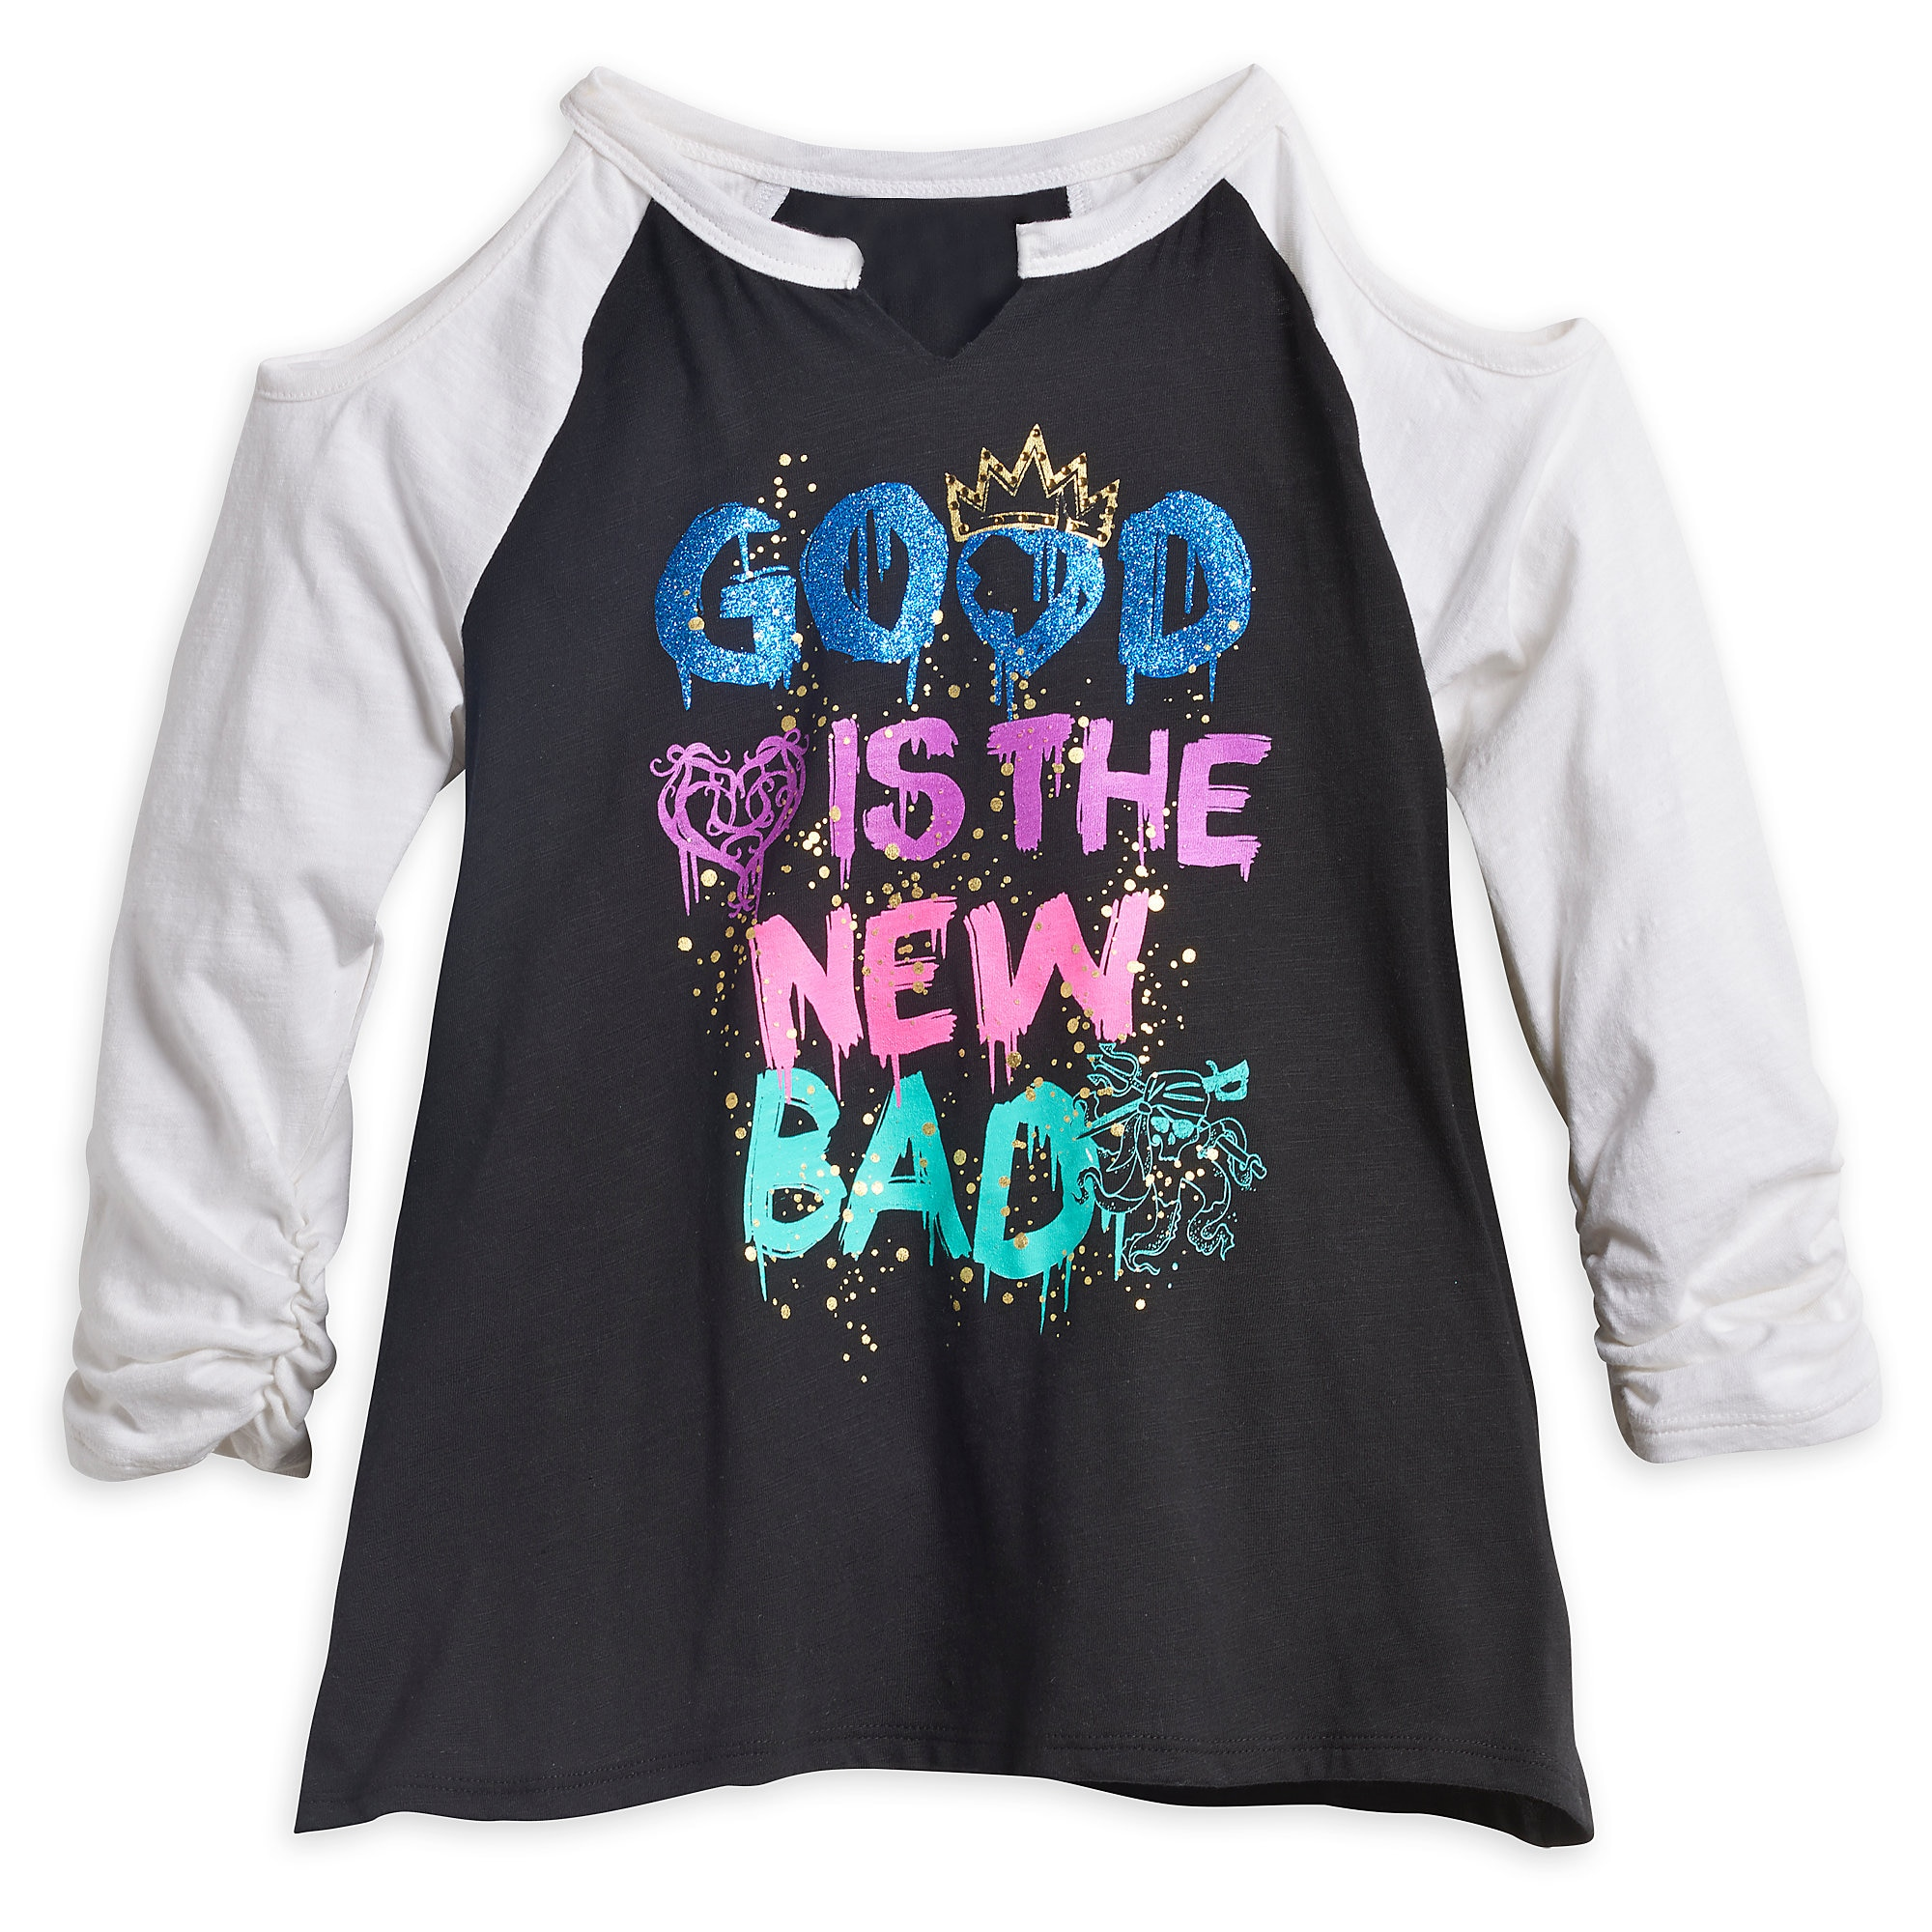 Descendants Raglan Top for Tweens